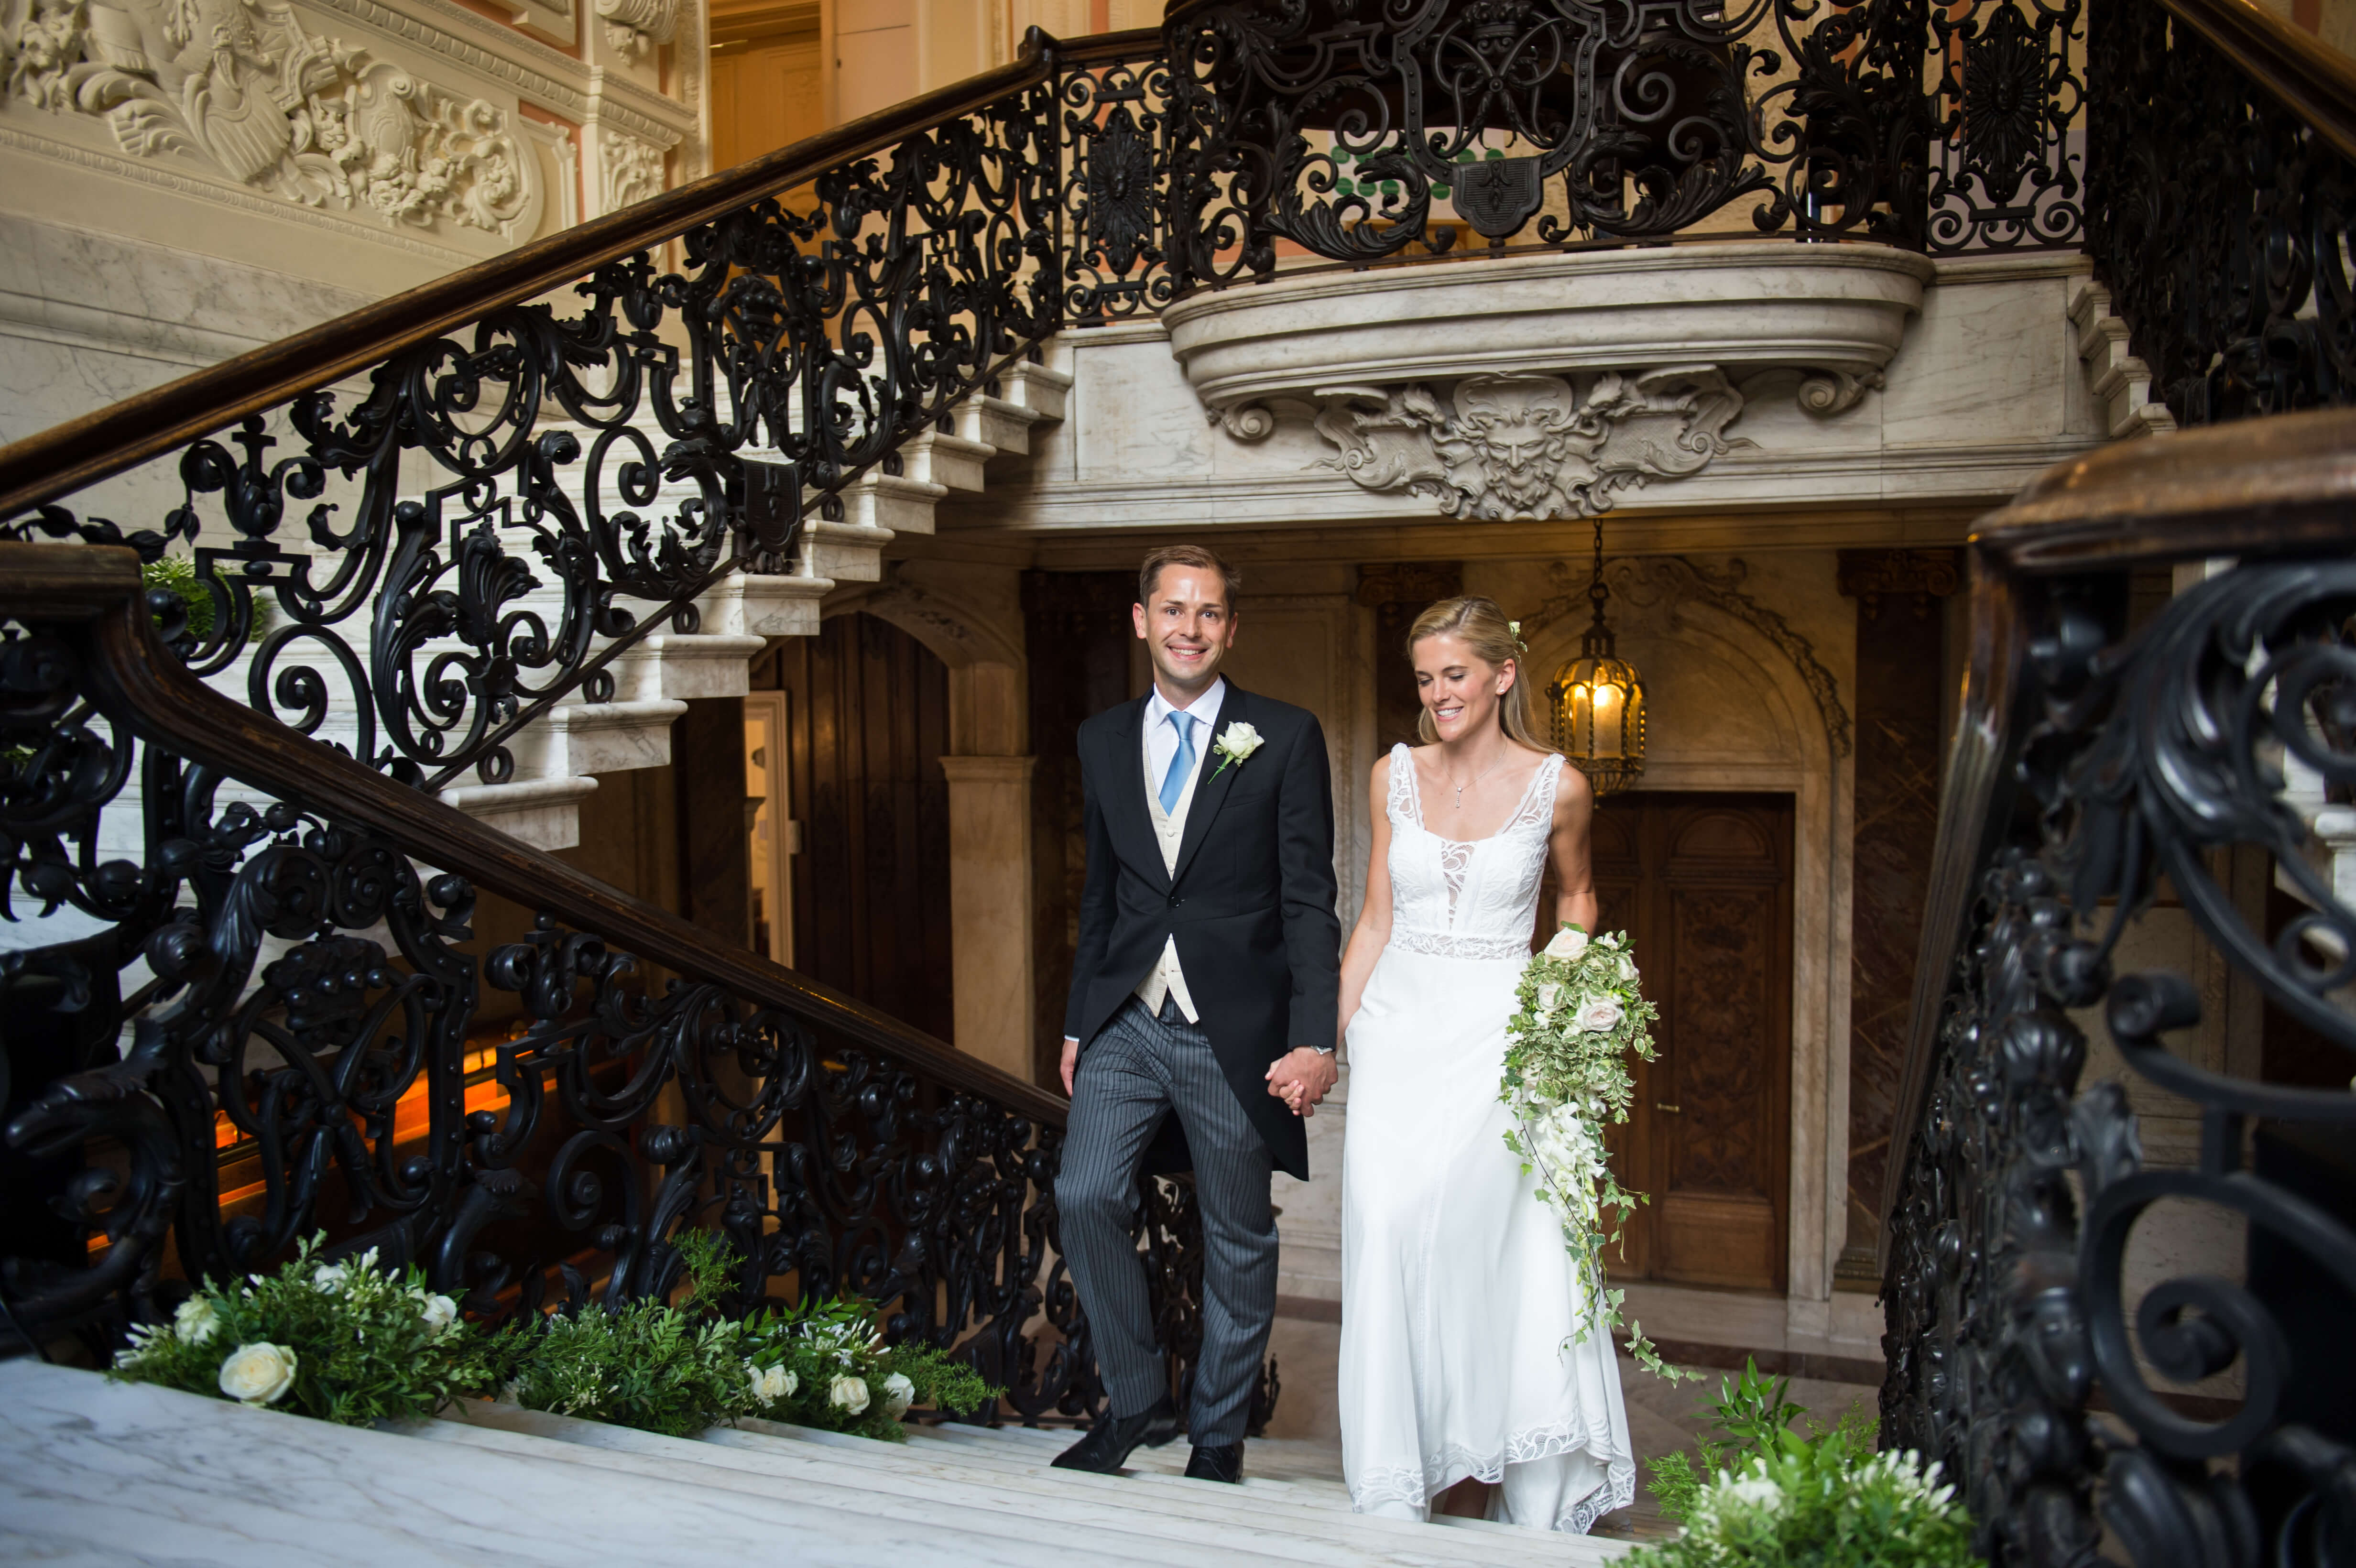 bride and groom on the stairs at dartmouth house wedding venue in mayfair london